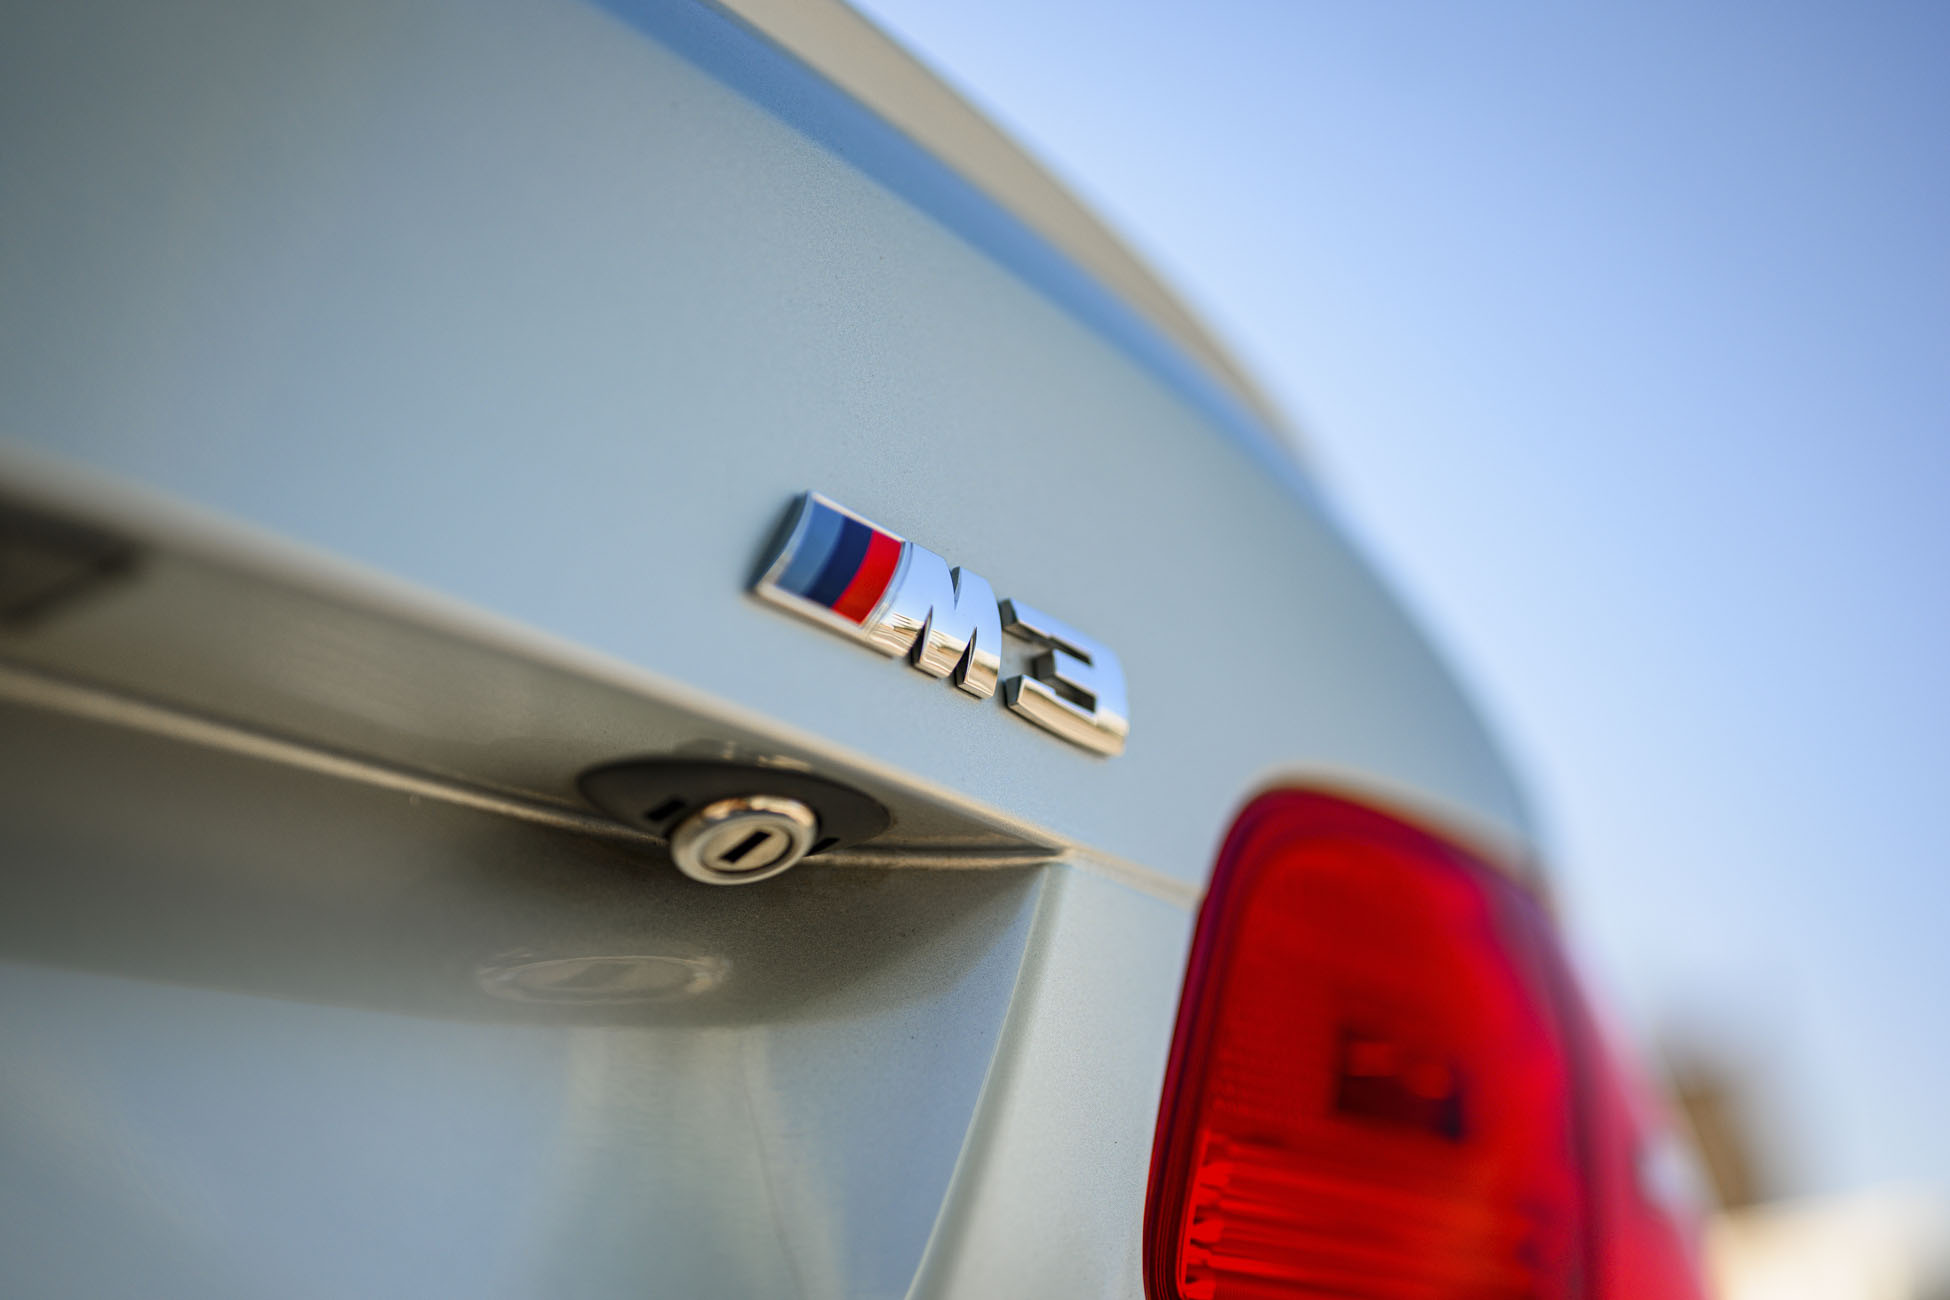 BMW M3 Coupe badge